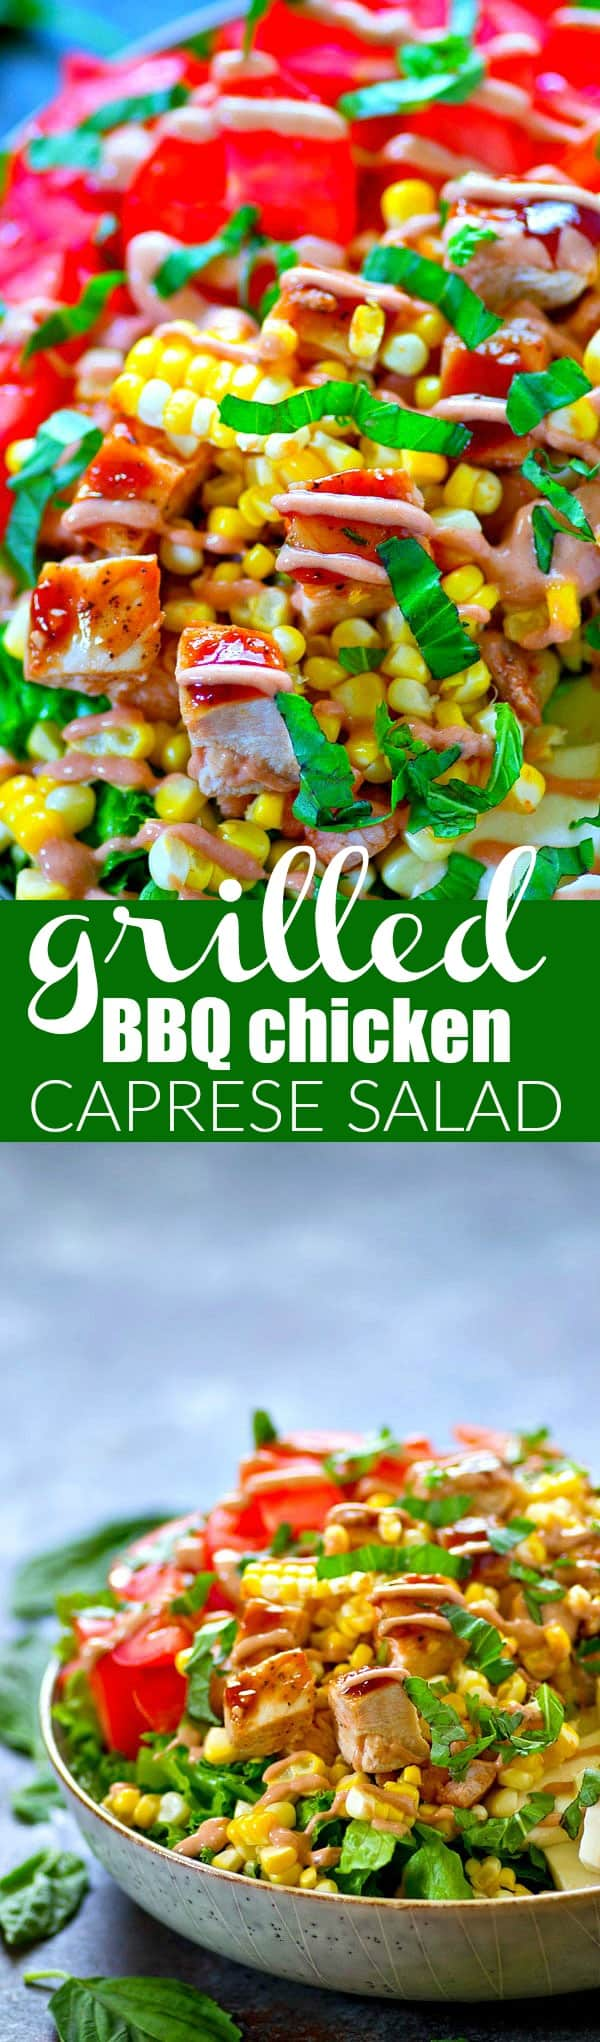 Juicy grilled barbecue chicken, a creamy barbecue dressing, and all the caprese fixins' make for one KILLER grilled BBQ chicken caprese salad you'll want on standby all summer!